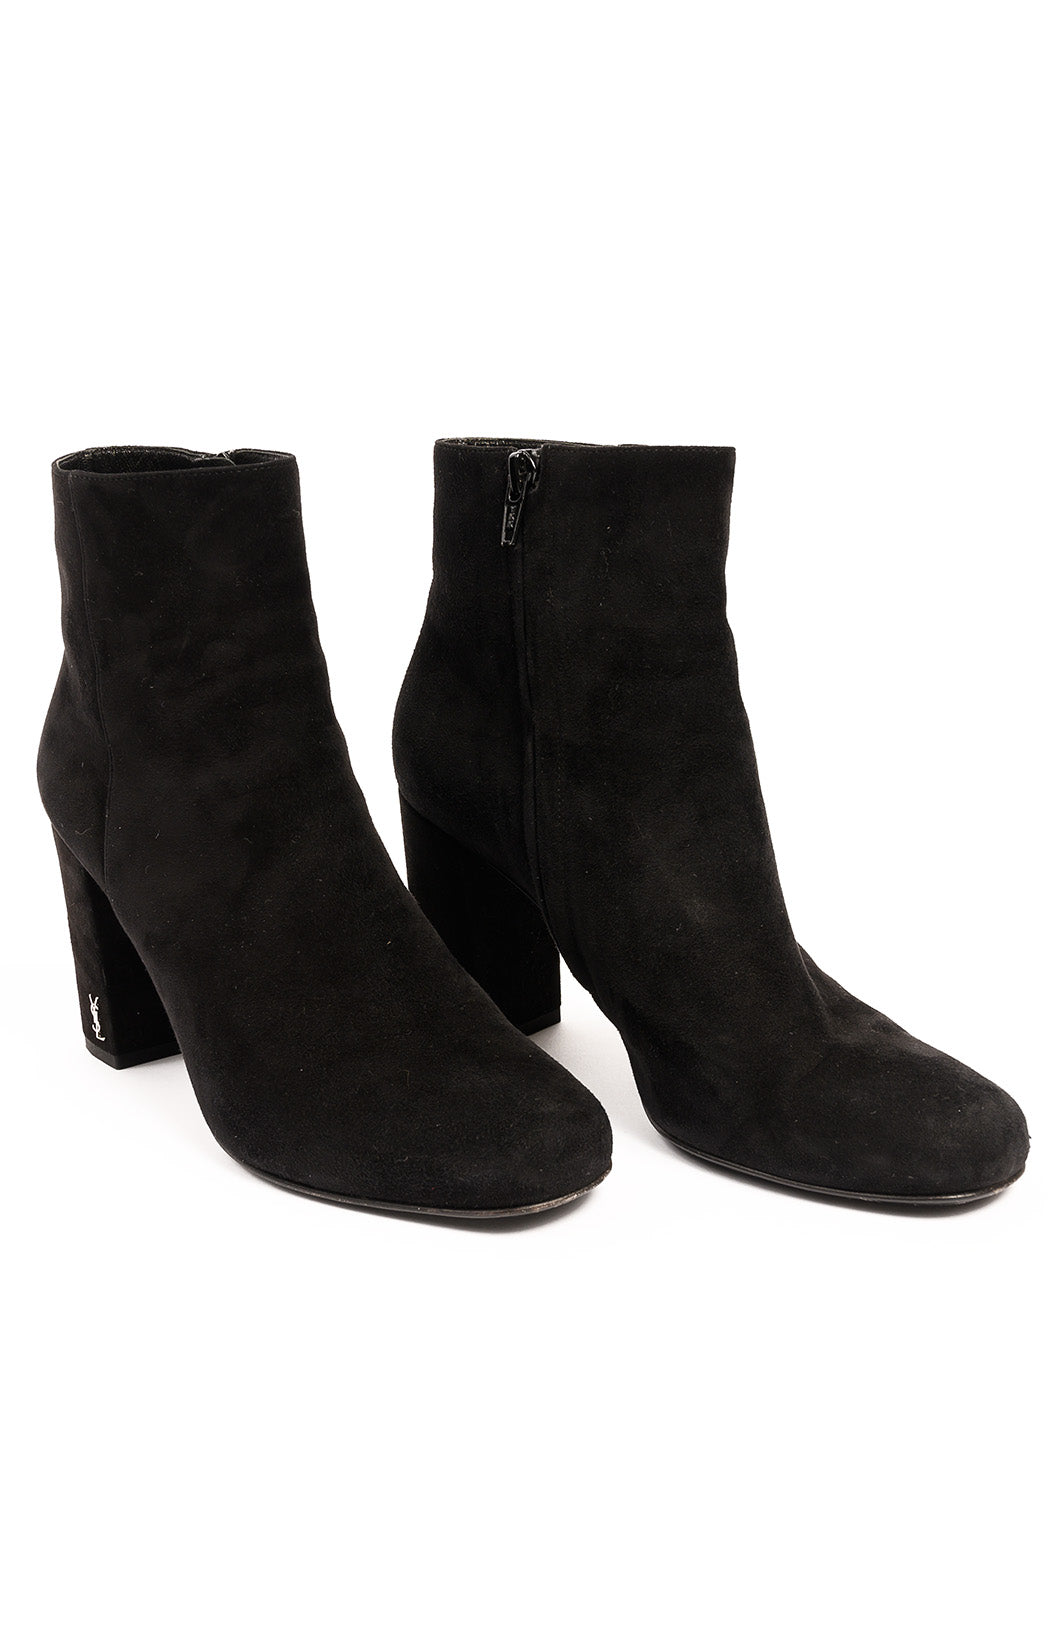 Front view of SAINT LAURENT  Boots Size: 7.5